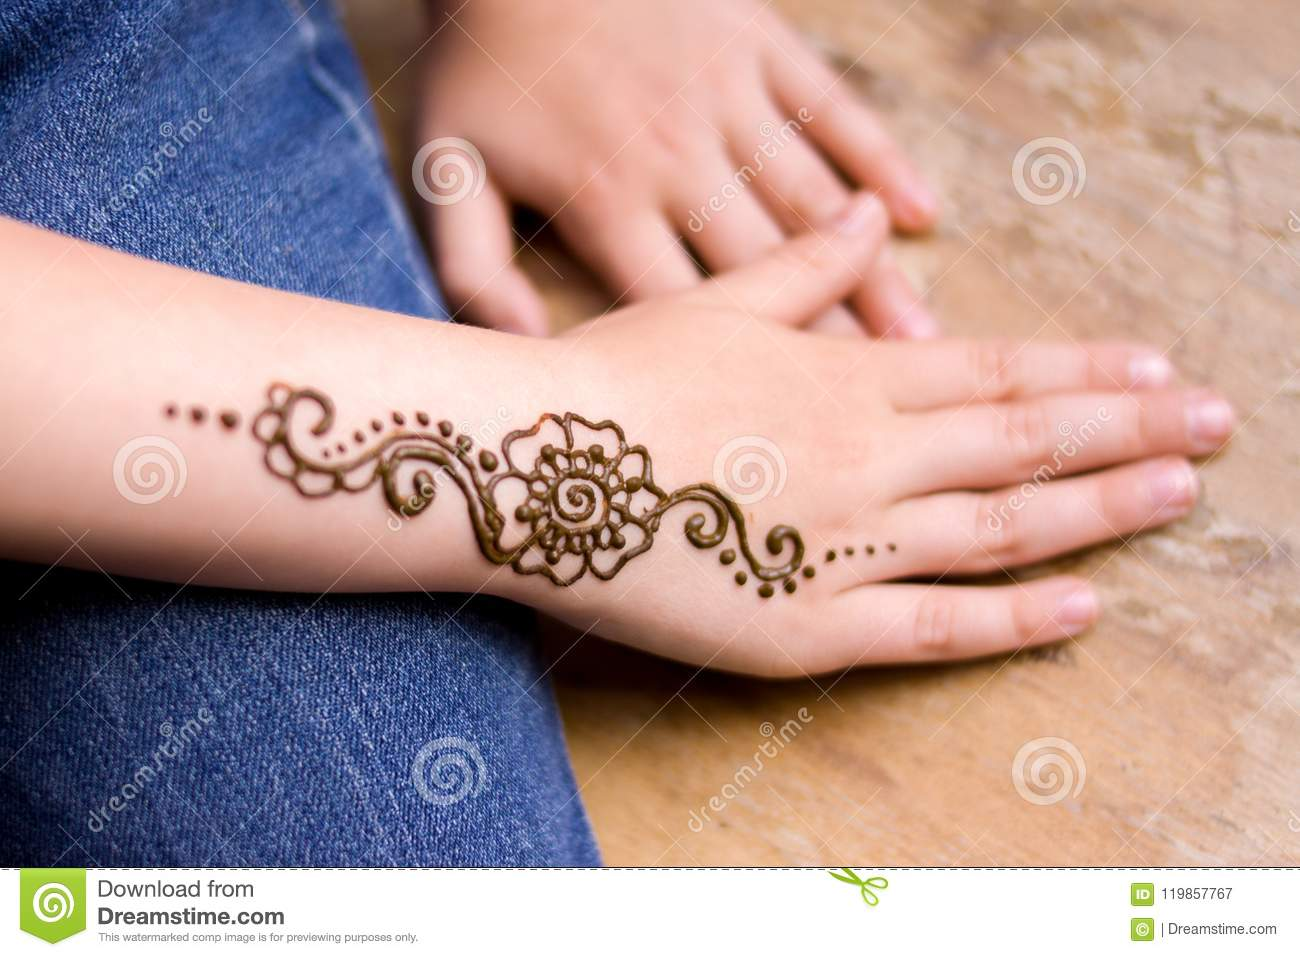 Traditional Henna Tattoo: Henna Tattoo On Small Girl Hand. Mehndi Is Traditional